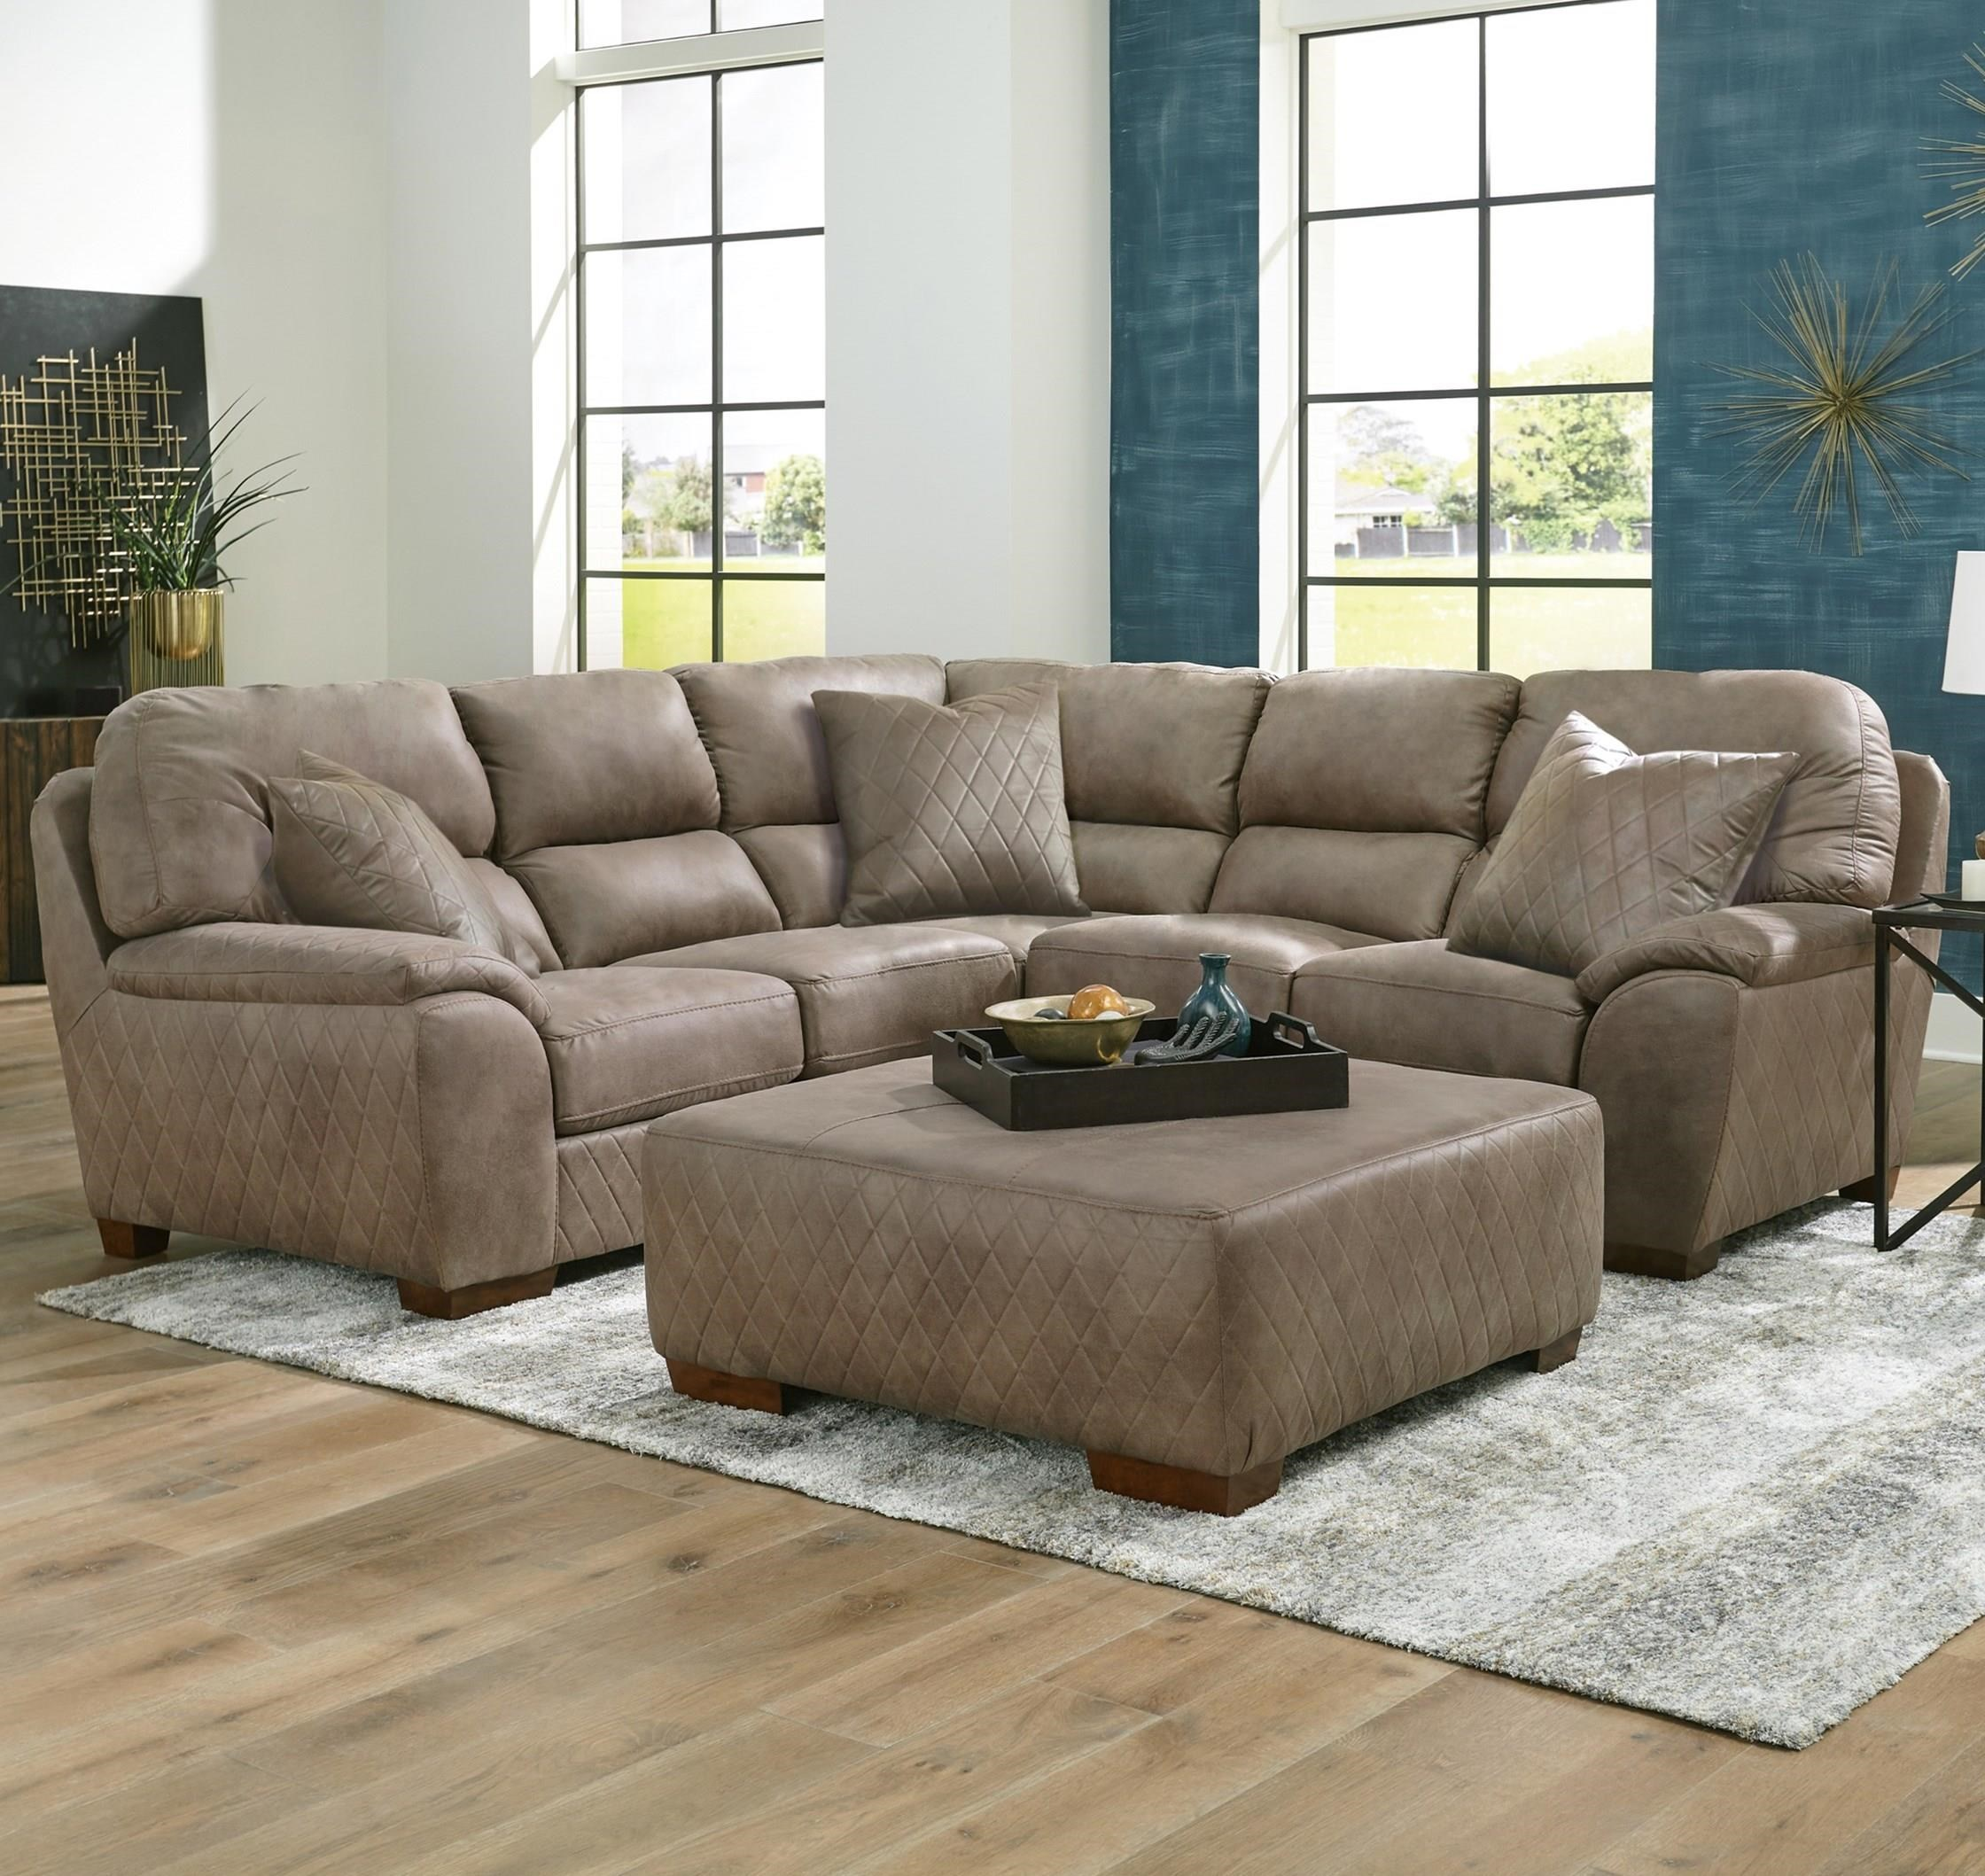 Royce L-Shaped Sectional with Chaise by Jackson Furniture at Northeast Factory Direct